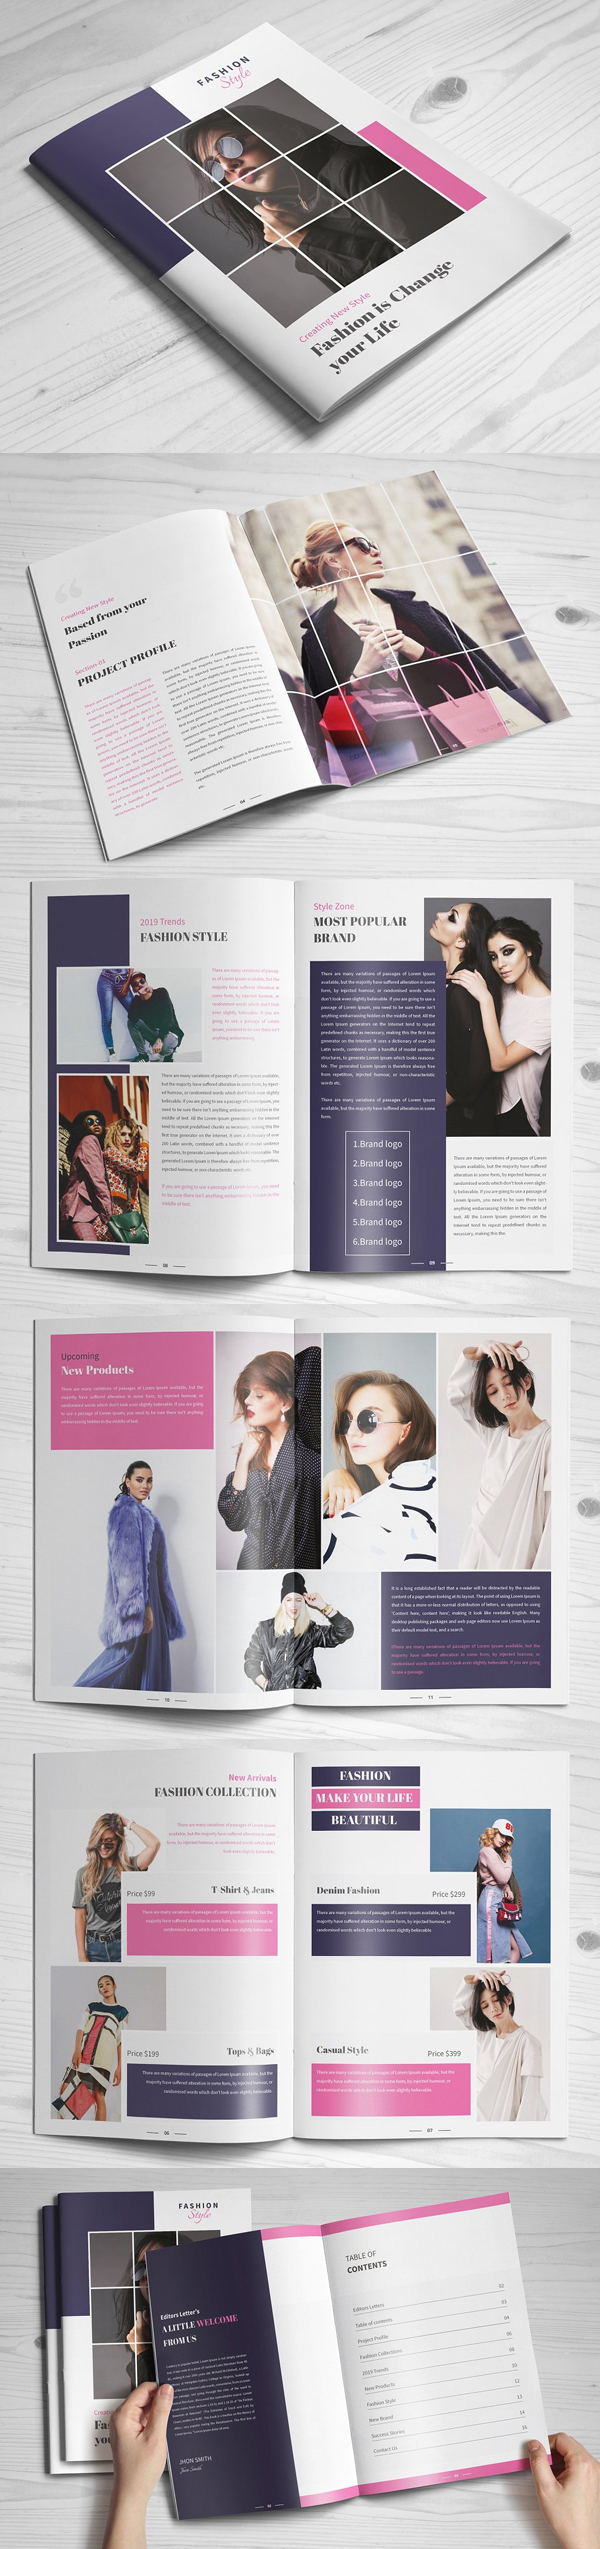 Modern Fashion Brochure Template